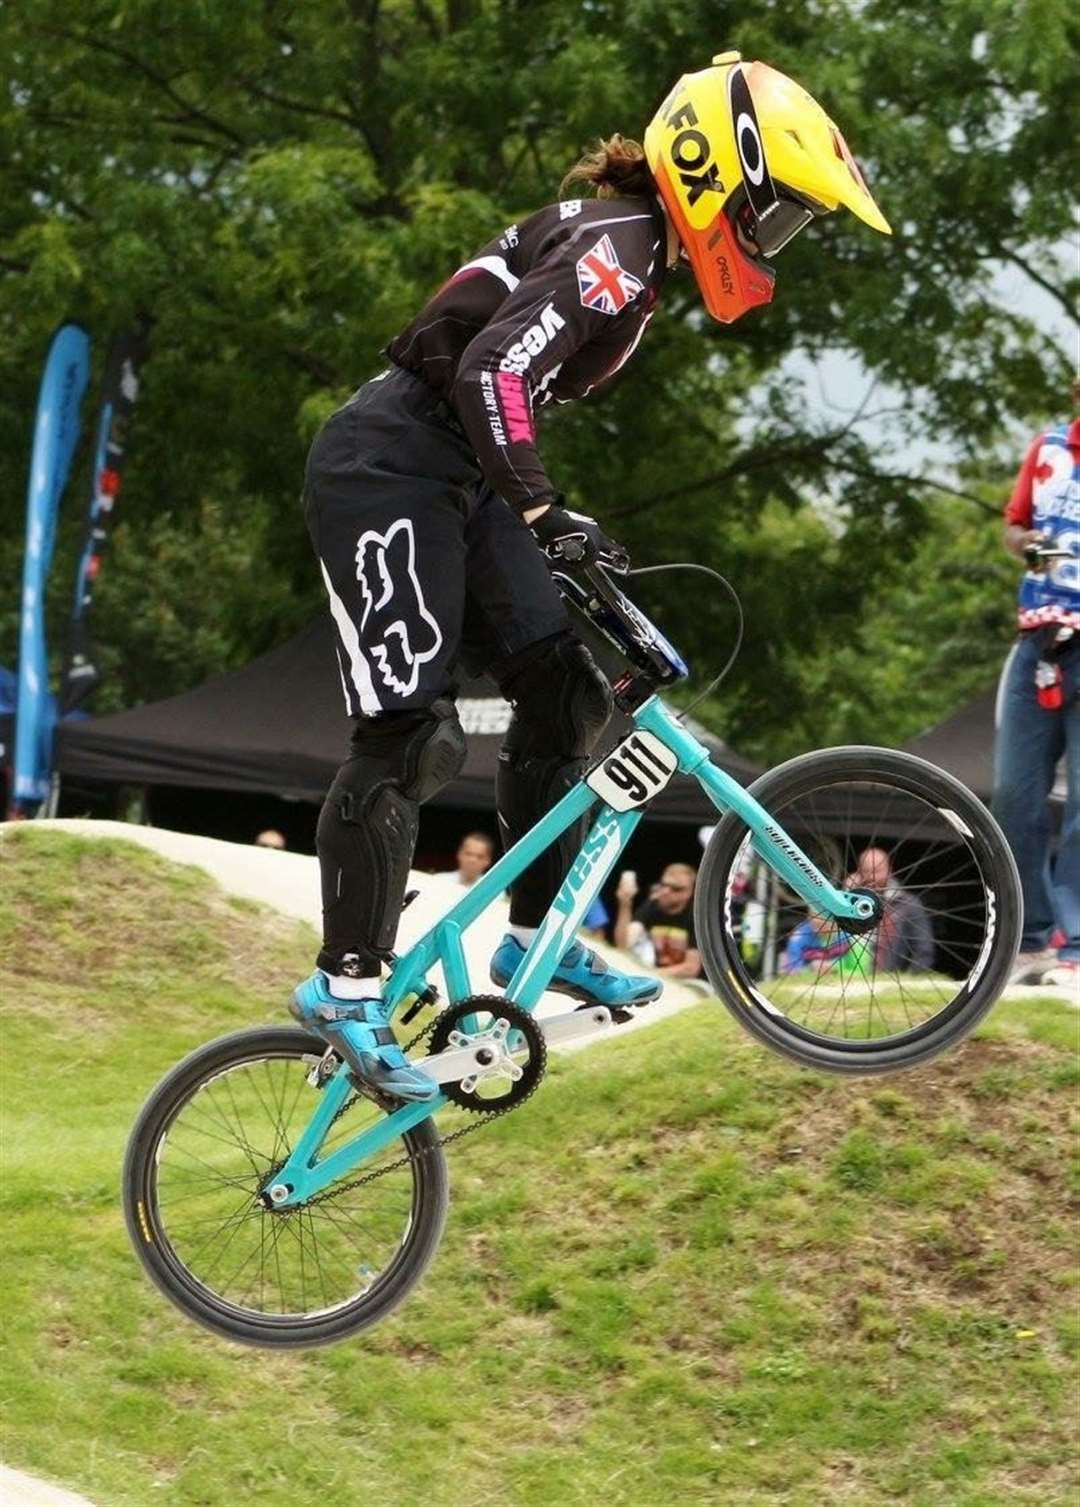 Bethany Shriever won gold at the Olympics.  Here it is in action at the Cyclopark, Gravesend, in June.  Photo: Cycloparc